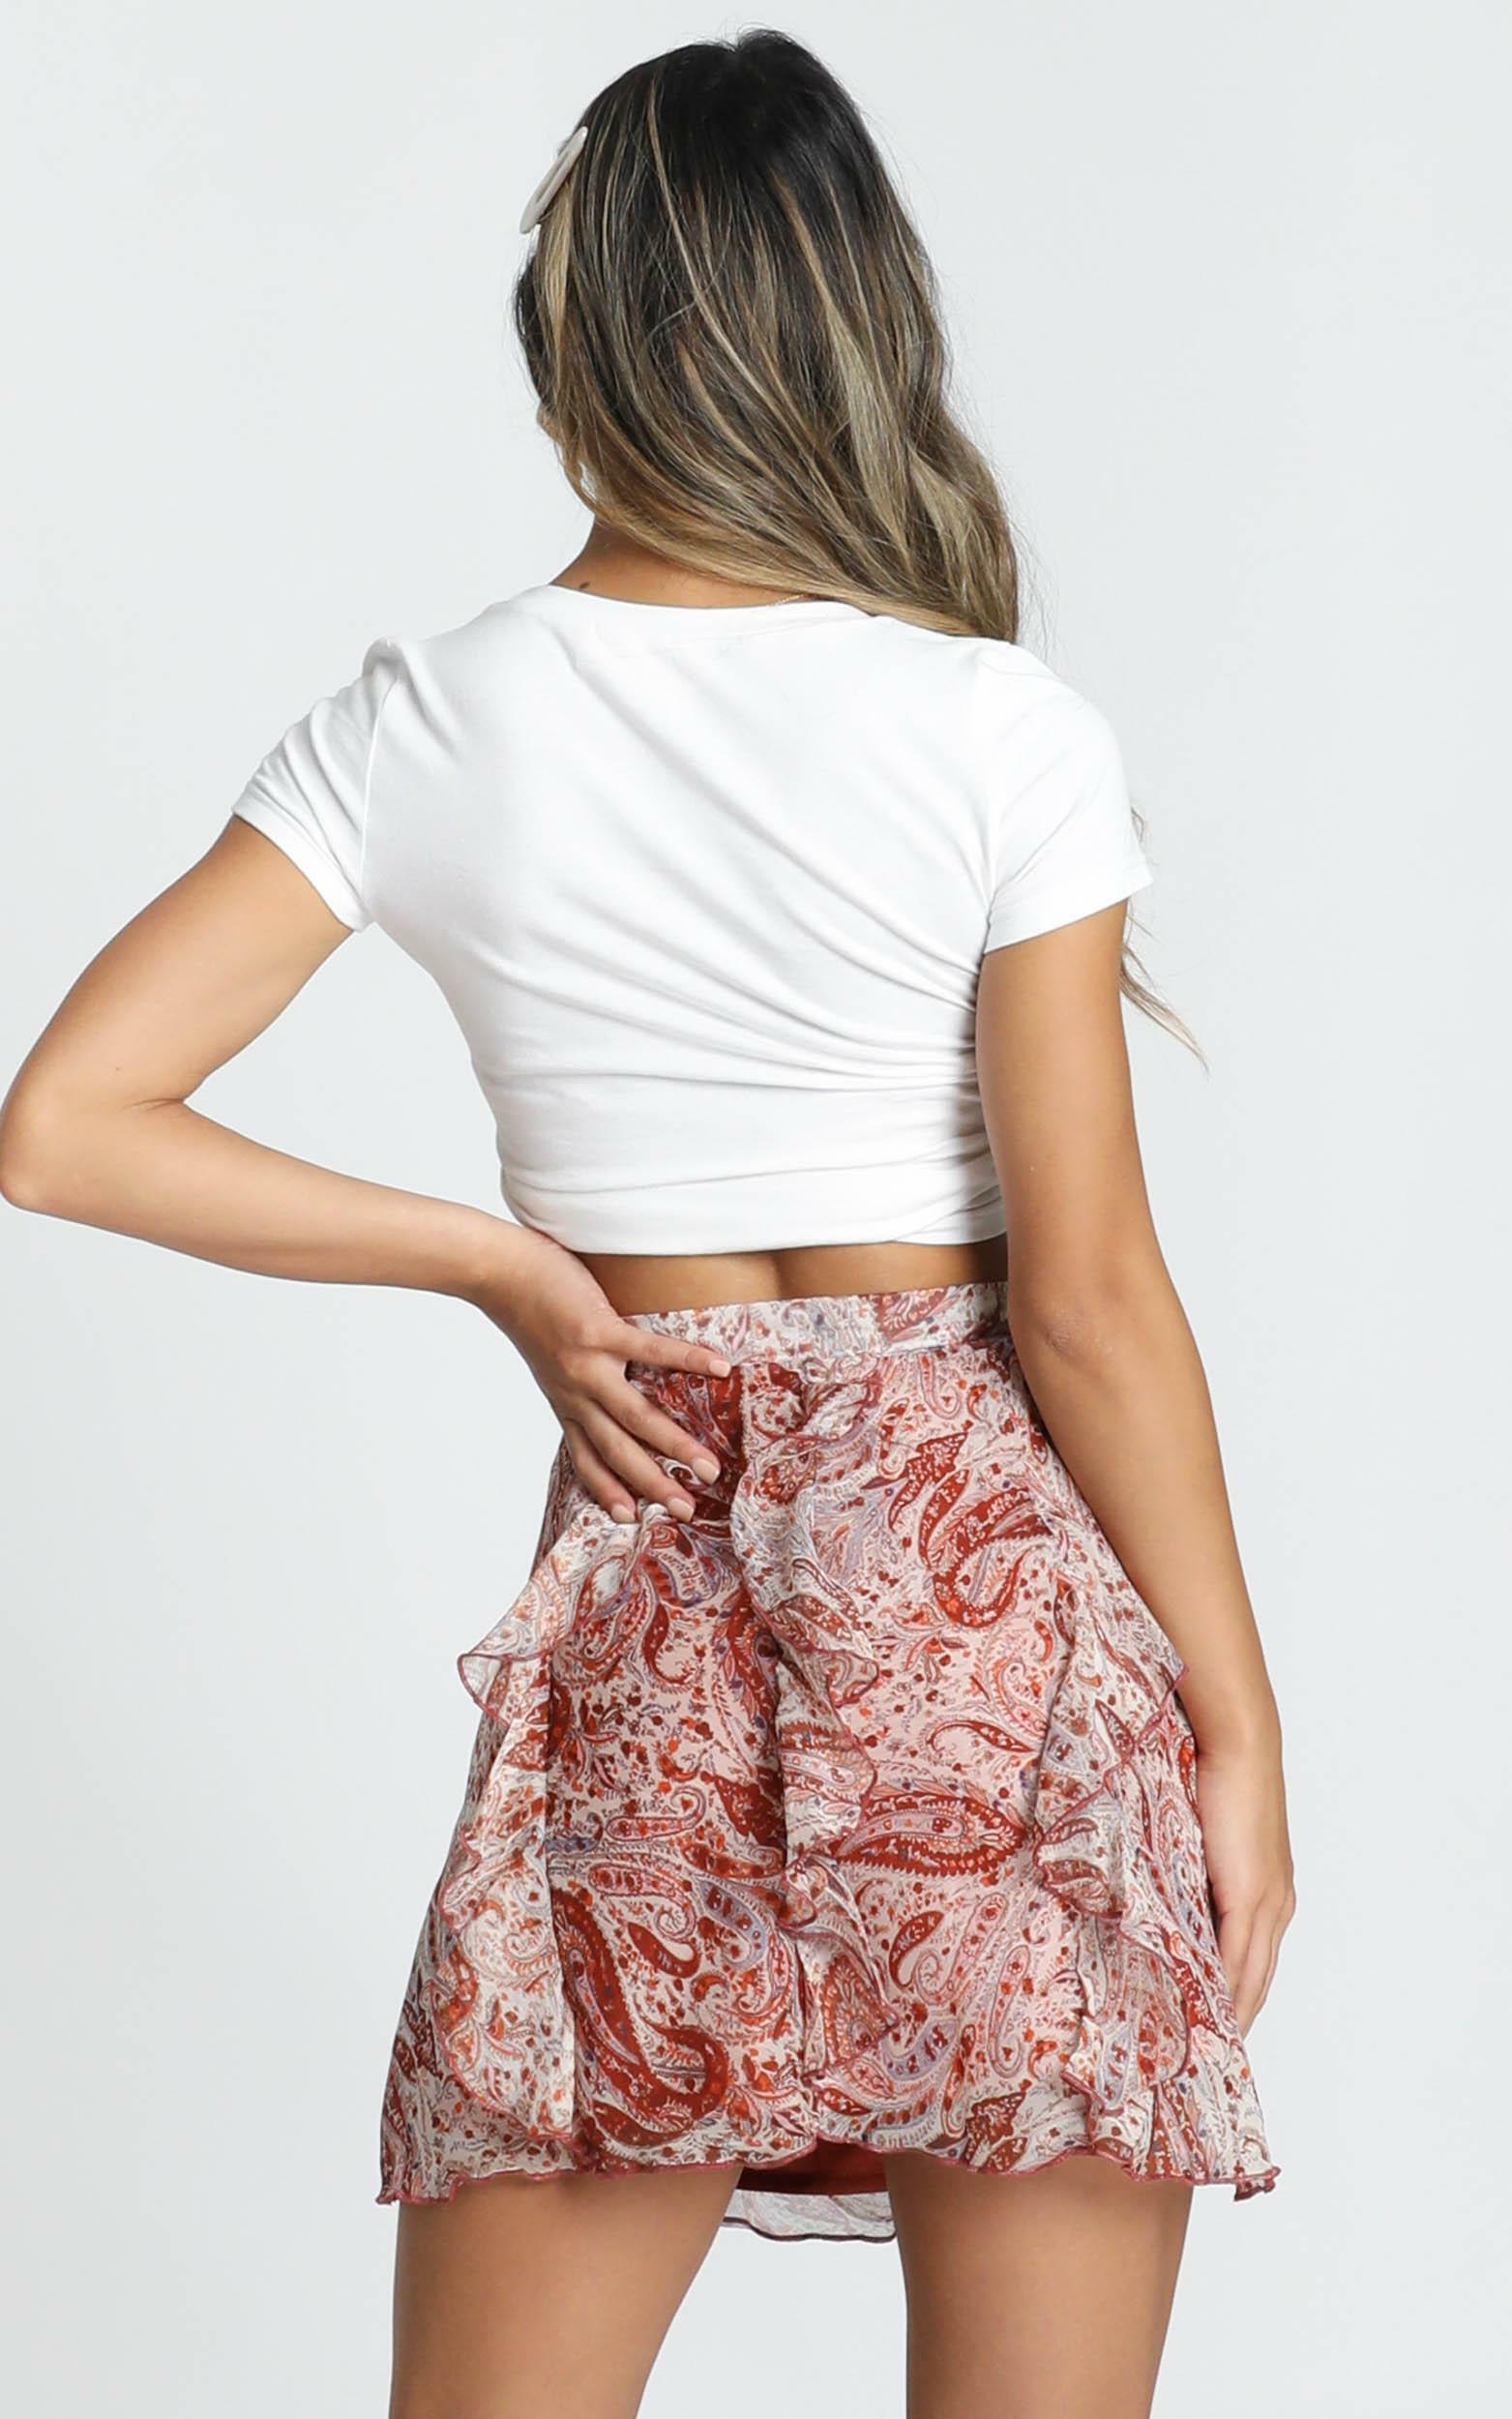 Just Go With Me skirt in rust paisley - 20 (XXXXL), Rust, hi-res image number null